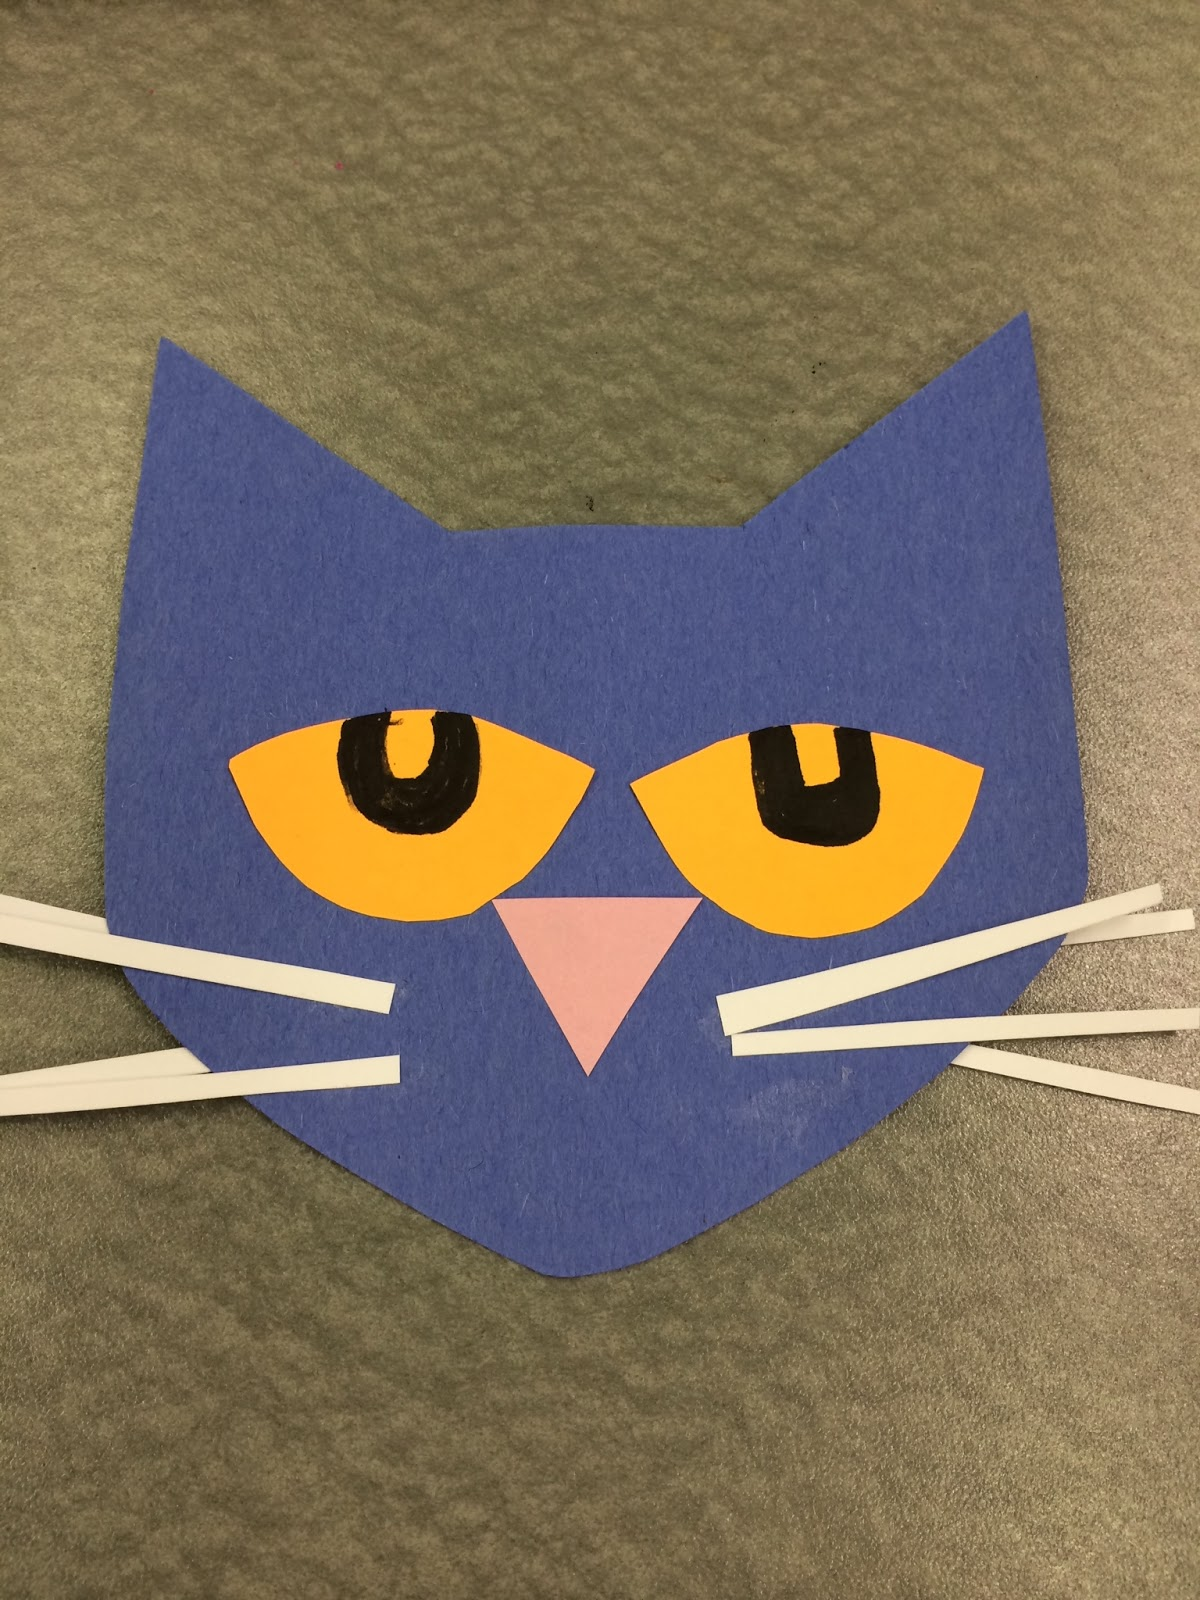 Library village preschool story time grumpy for Cat art and craft